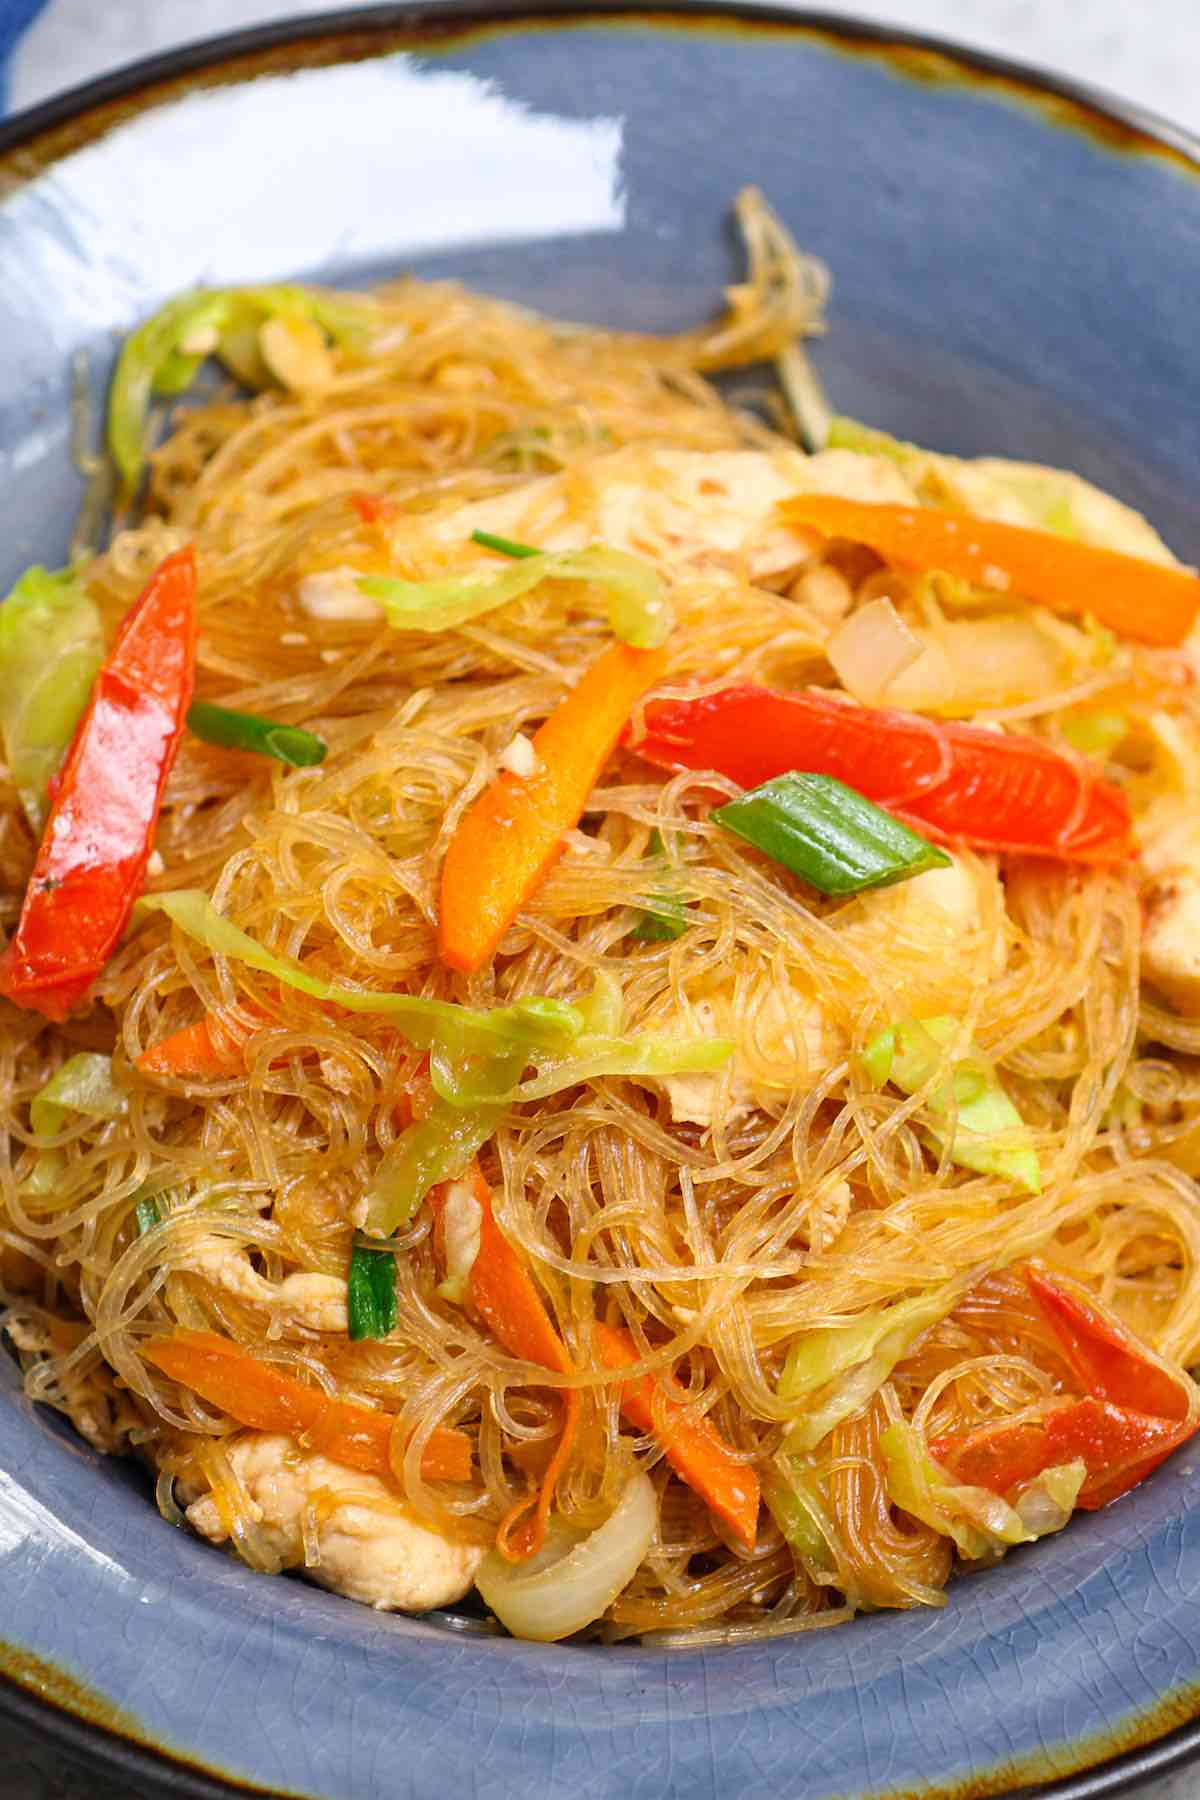 Rice Noodles are a delicious ingredient in many Asian cuisines and can be easily turned into a hearty meal.  We've collected the 13 Best Rice Noodle Recipes that are easy to make and mouth-watering delicious.